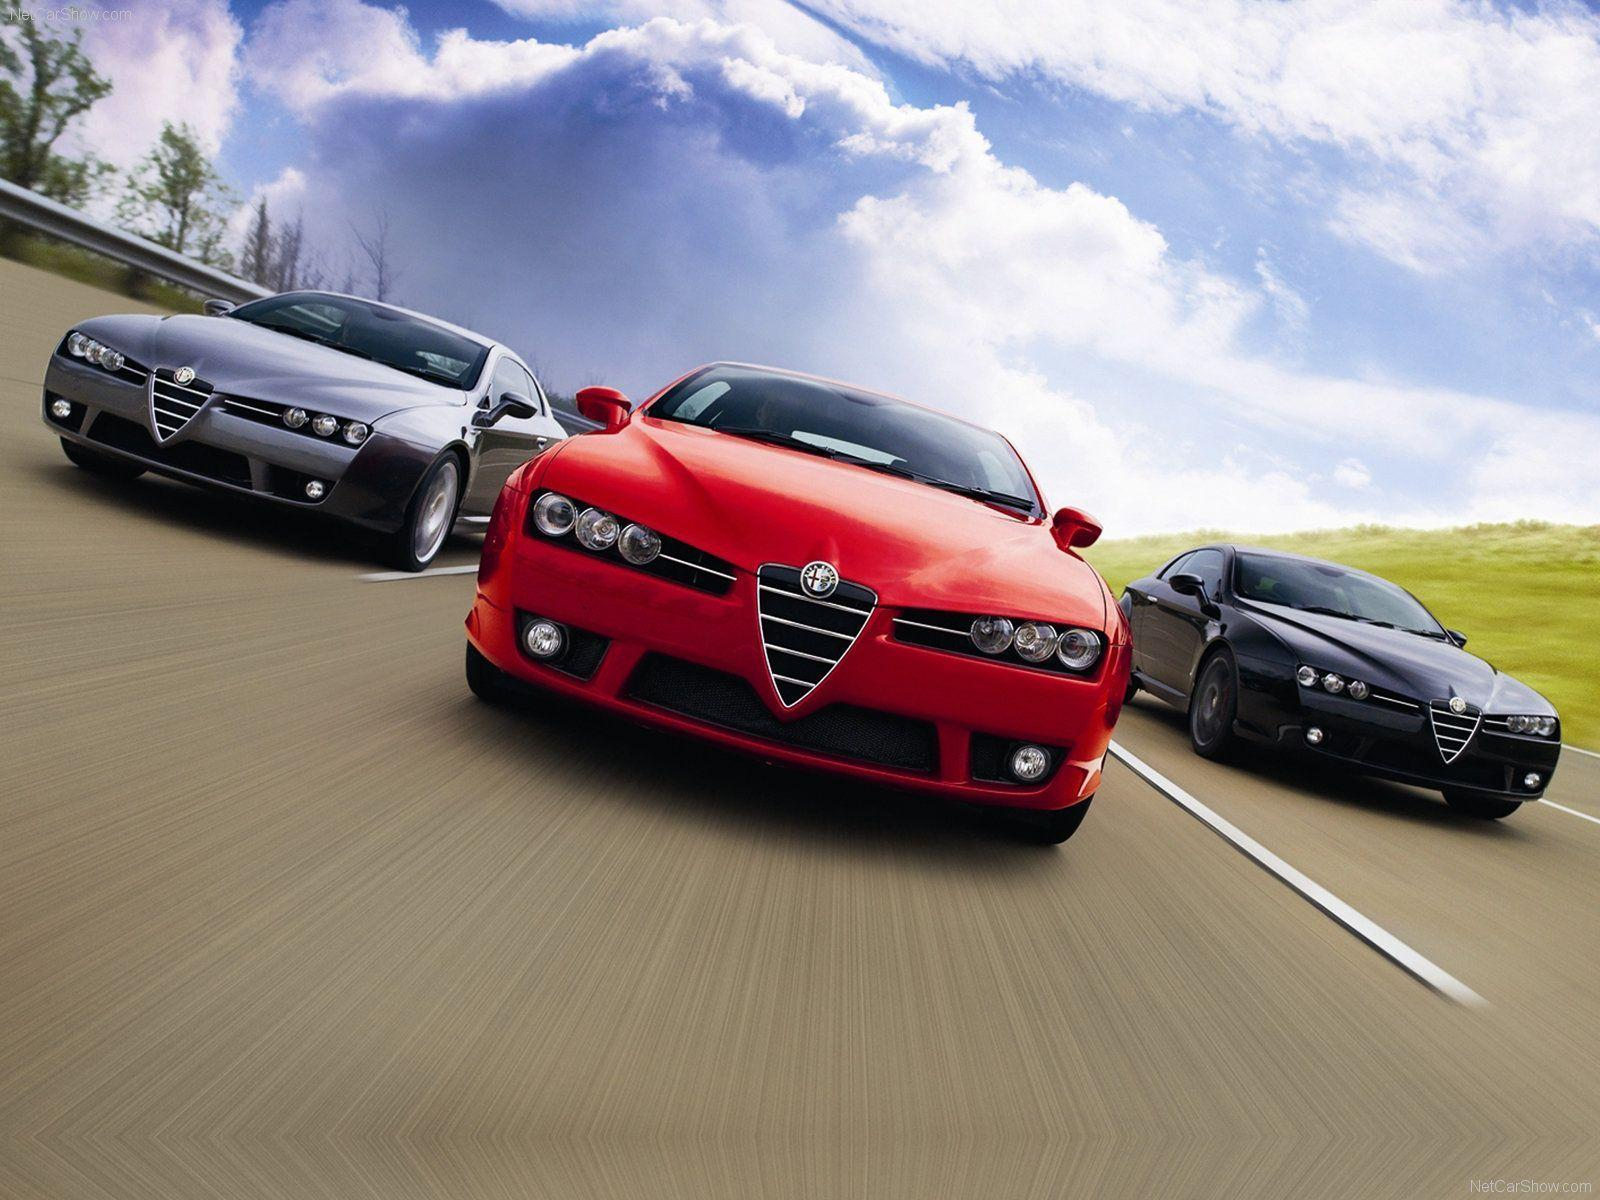 2009 Alfa Romeo Brera S Wallpapers